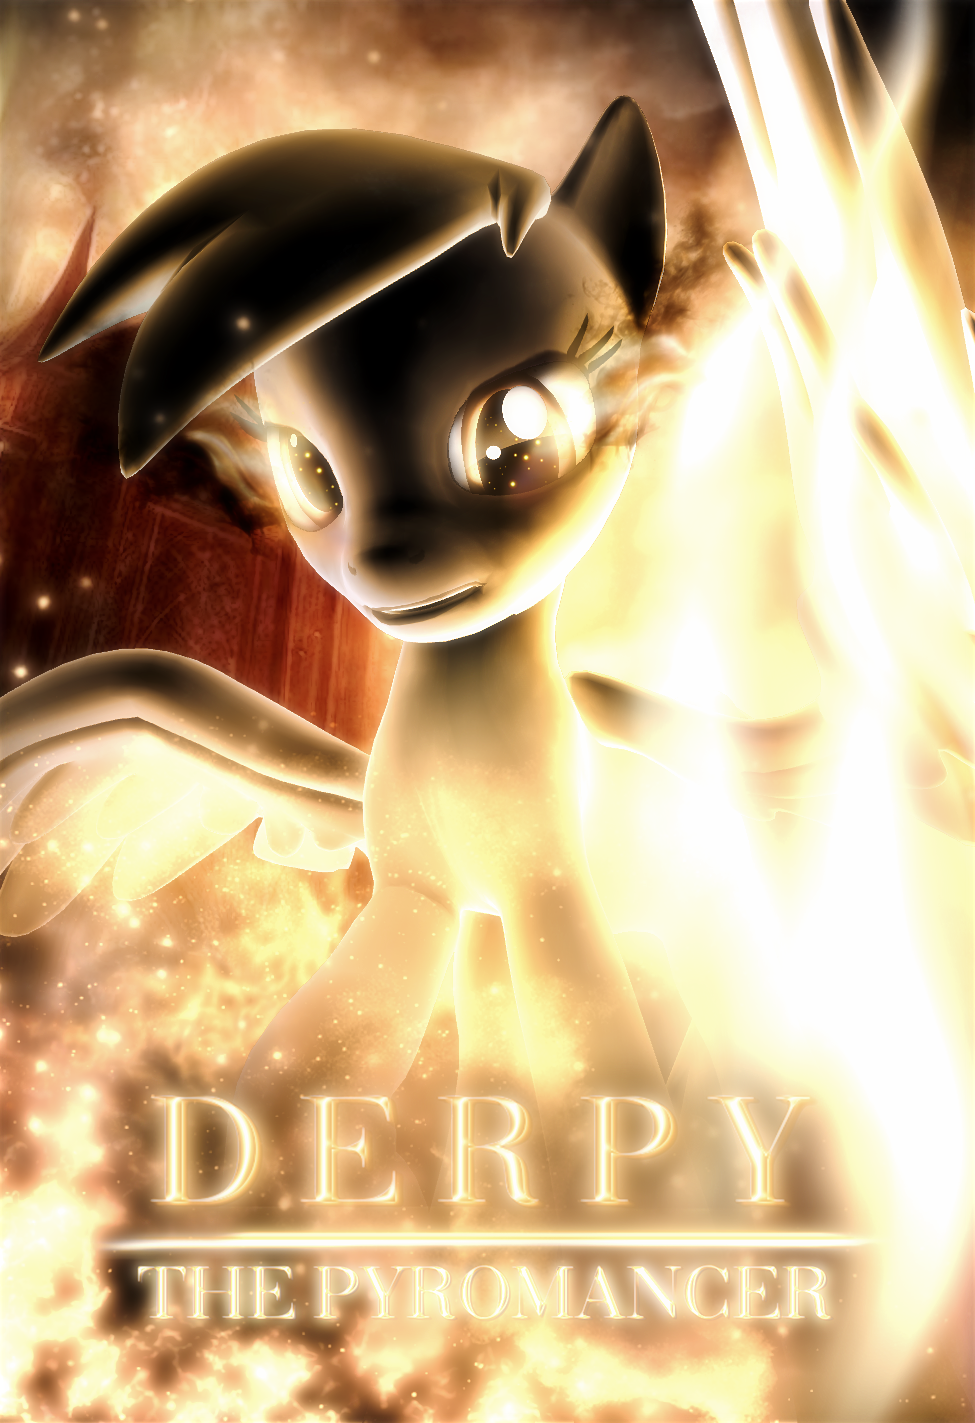 Derp by iLucky7